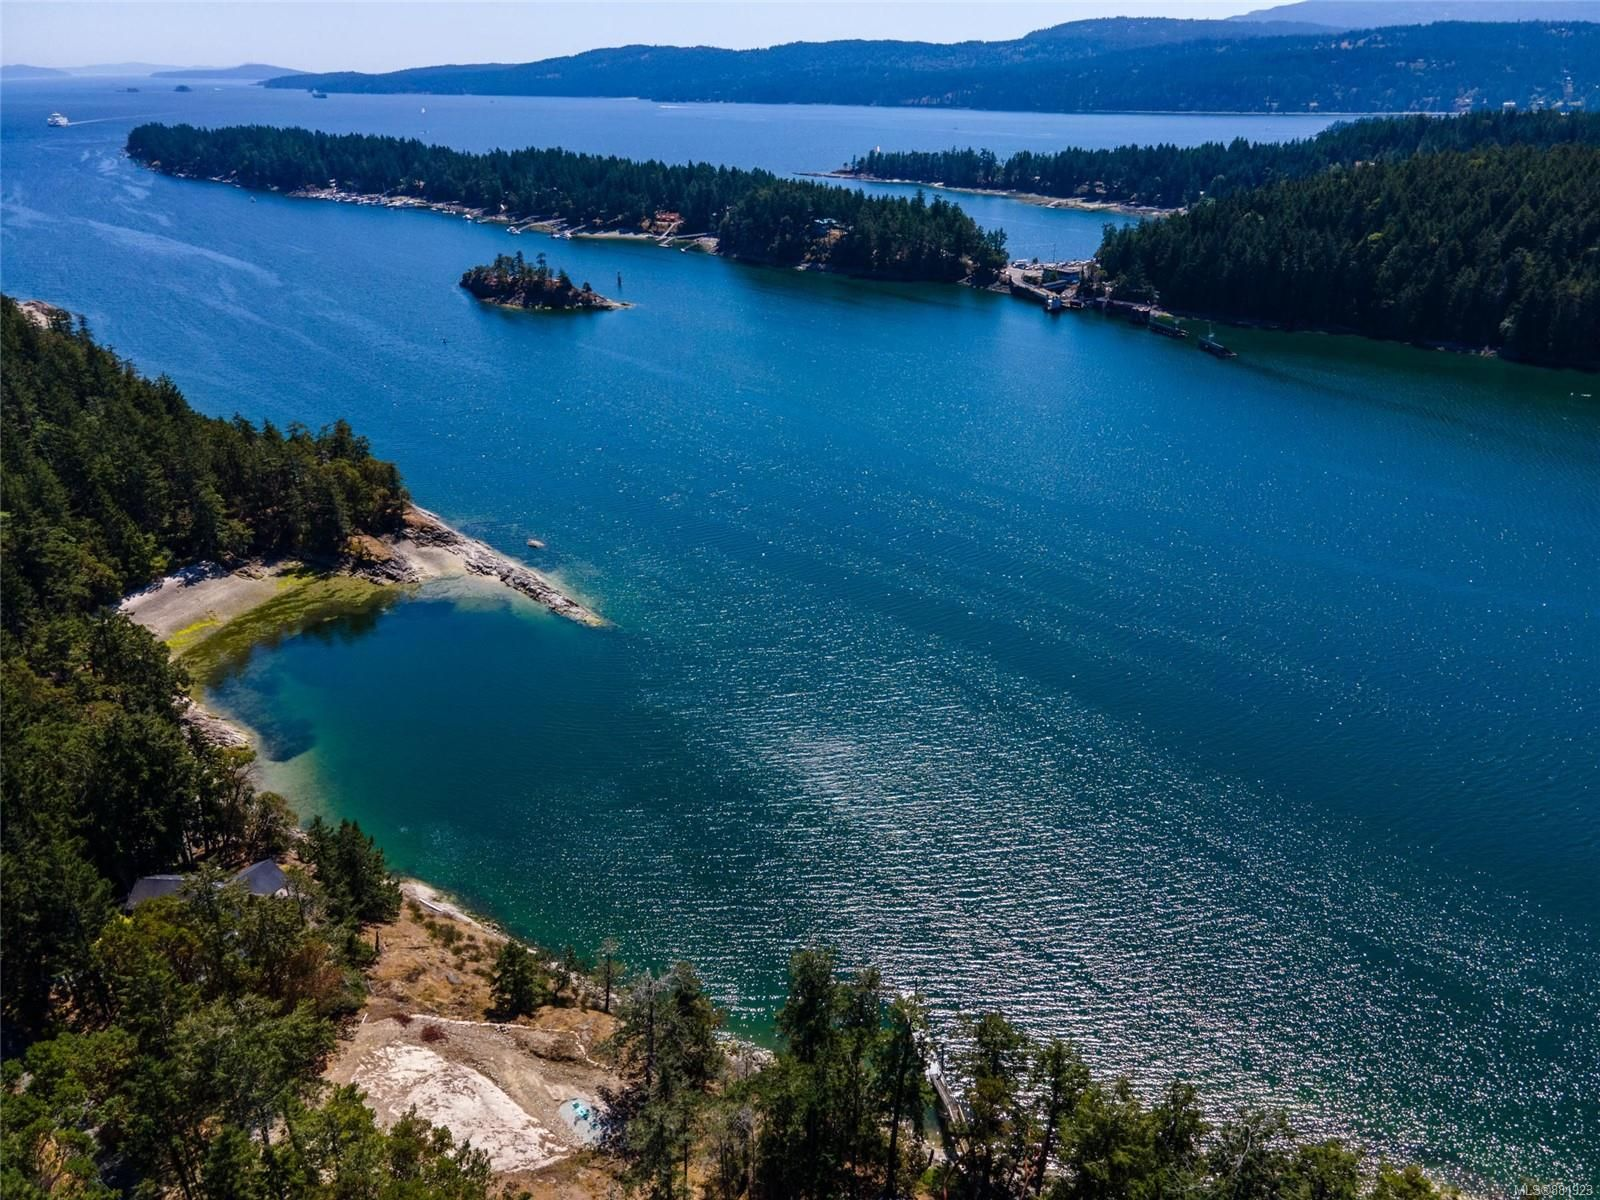 Main Photo: 1095 Nose Point Rd in : GI Salt Spring Land for sale (Gulf Islands)  : MLS®# 881923